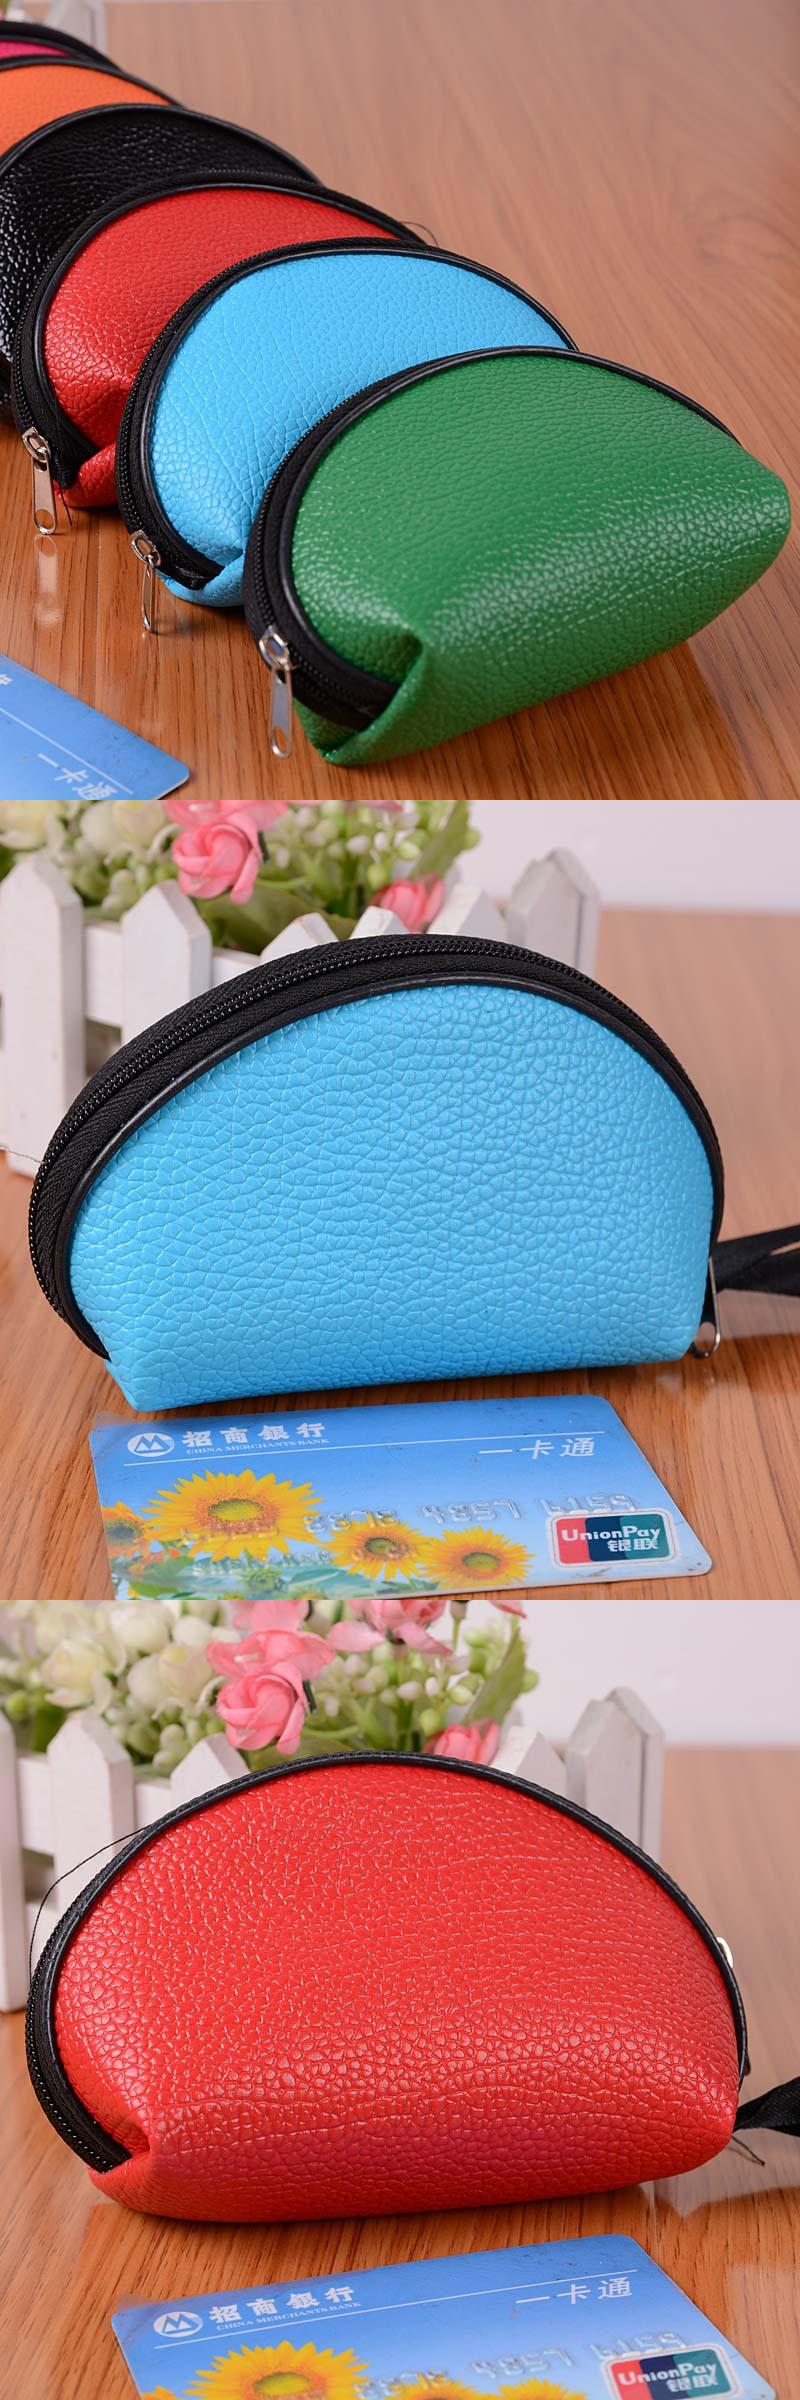 [Visit to Buy] New Designer Purse Girl Kawaii Bag With Zipper Pu Leather Coin Purses Small Women's Wallet Teen Girl Credit Card Pack 45 #Advertisement